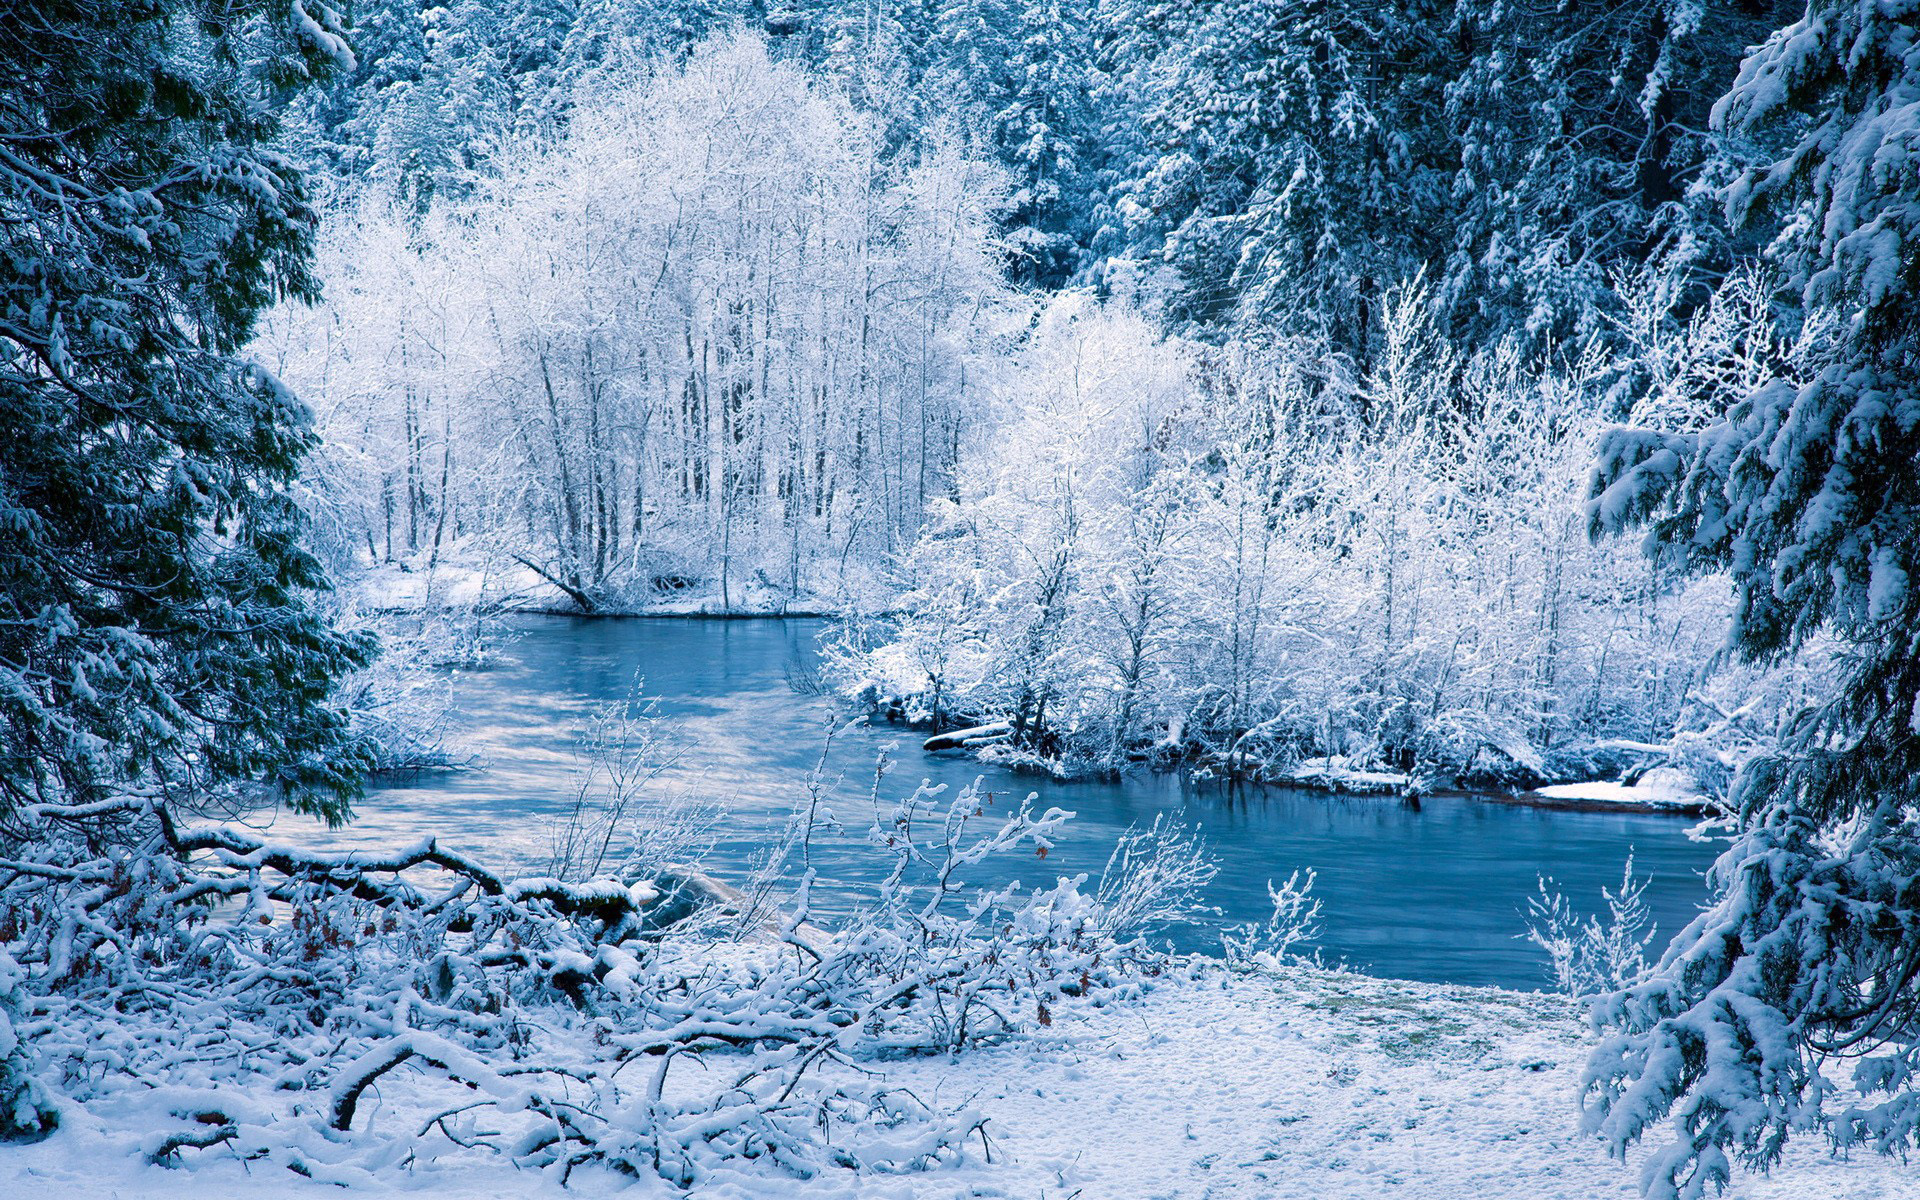 snow frost rivers shore trees forest seasonal wallpaper background 1920x1200